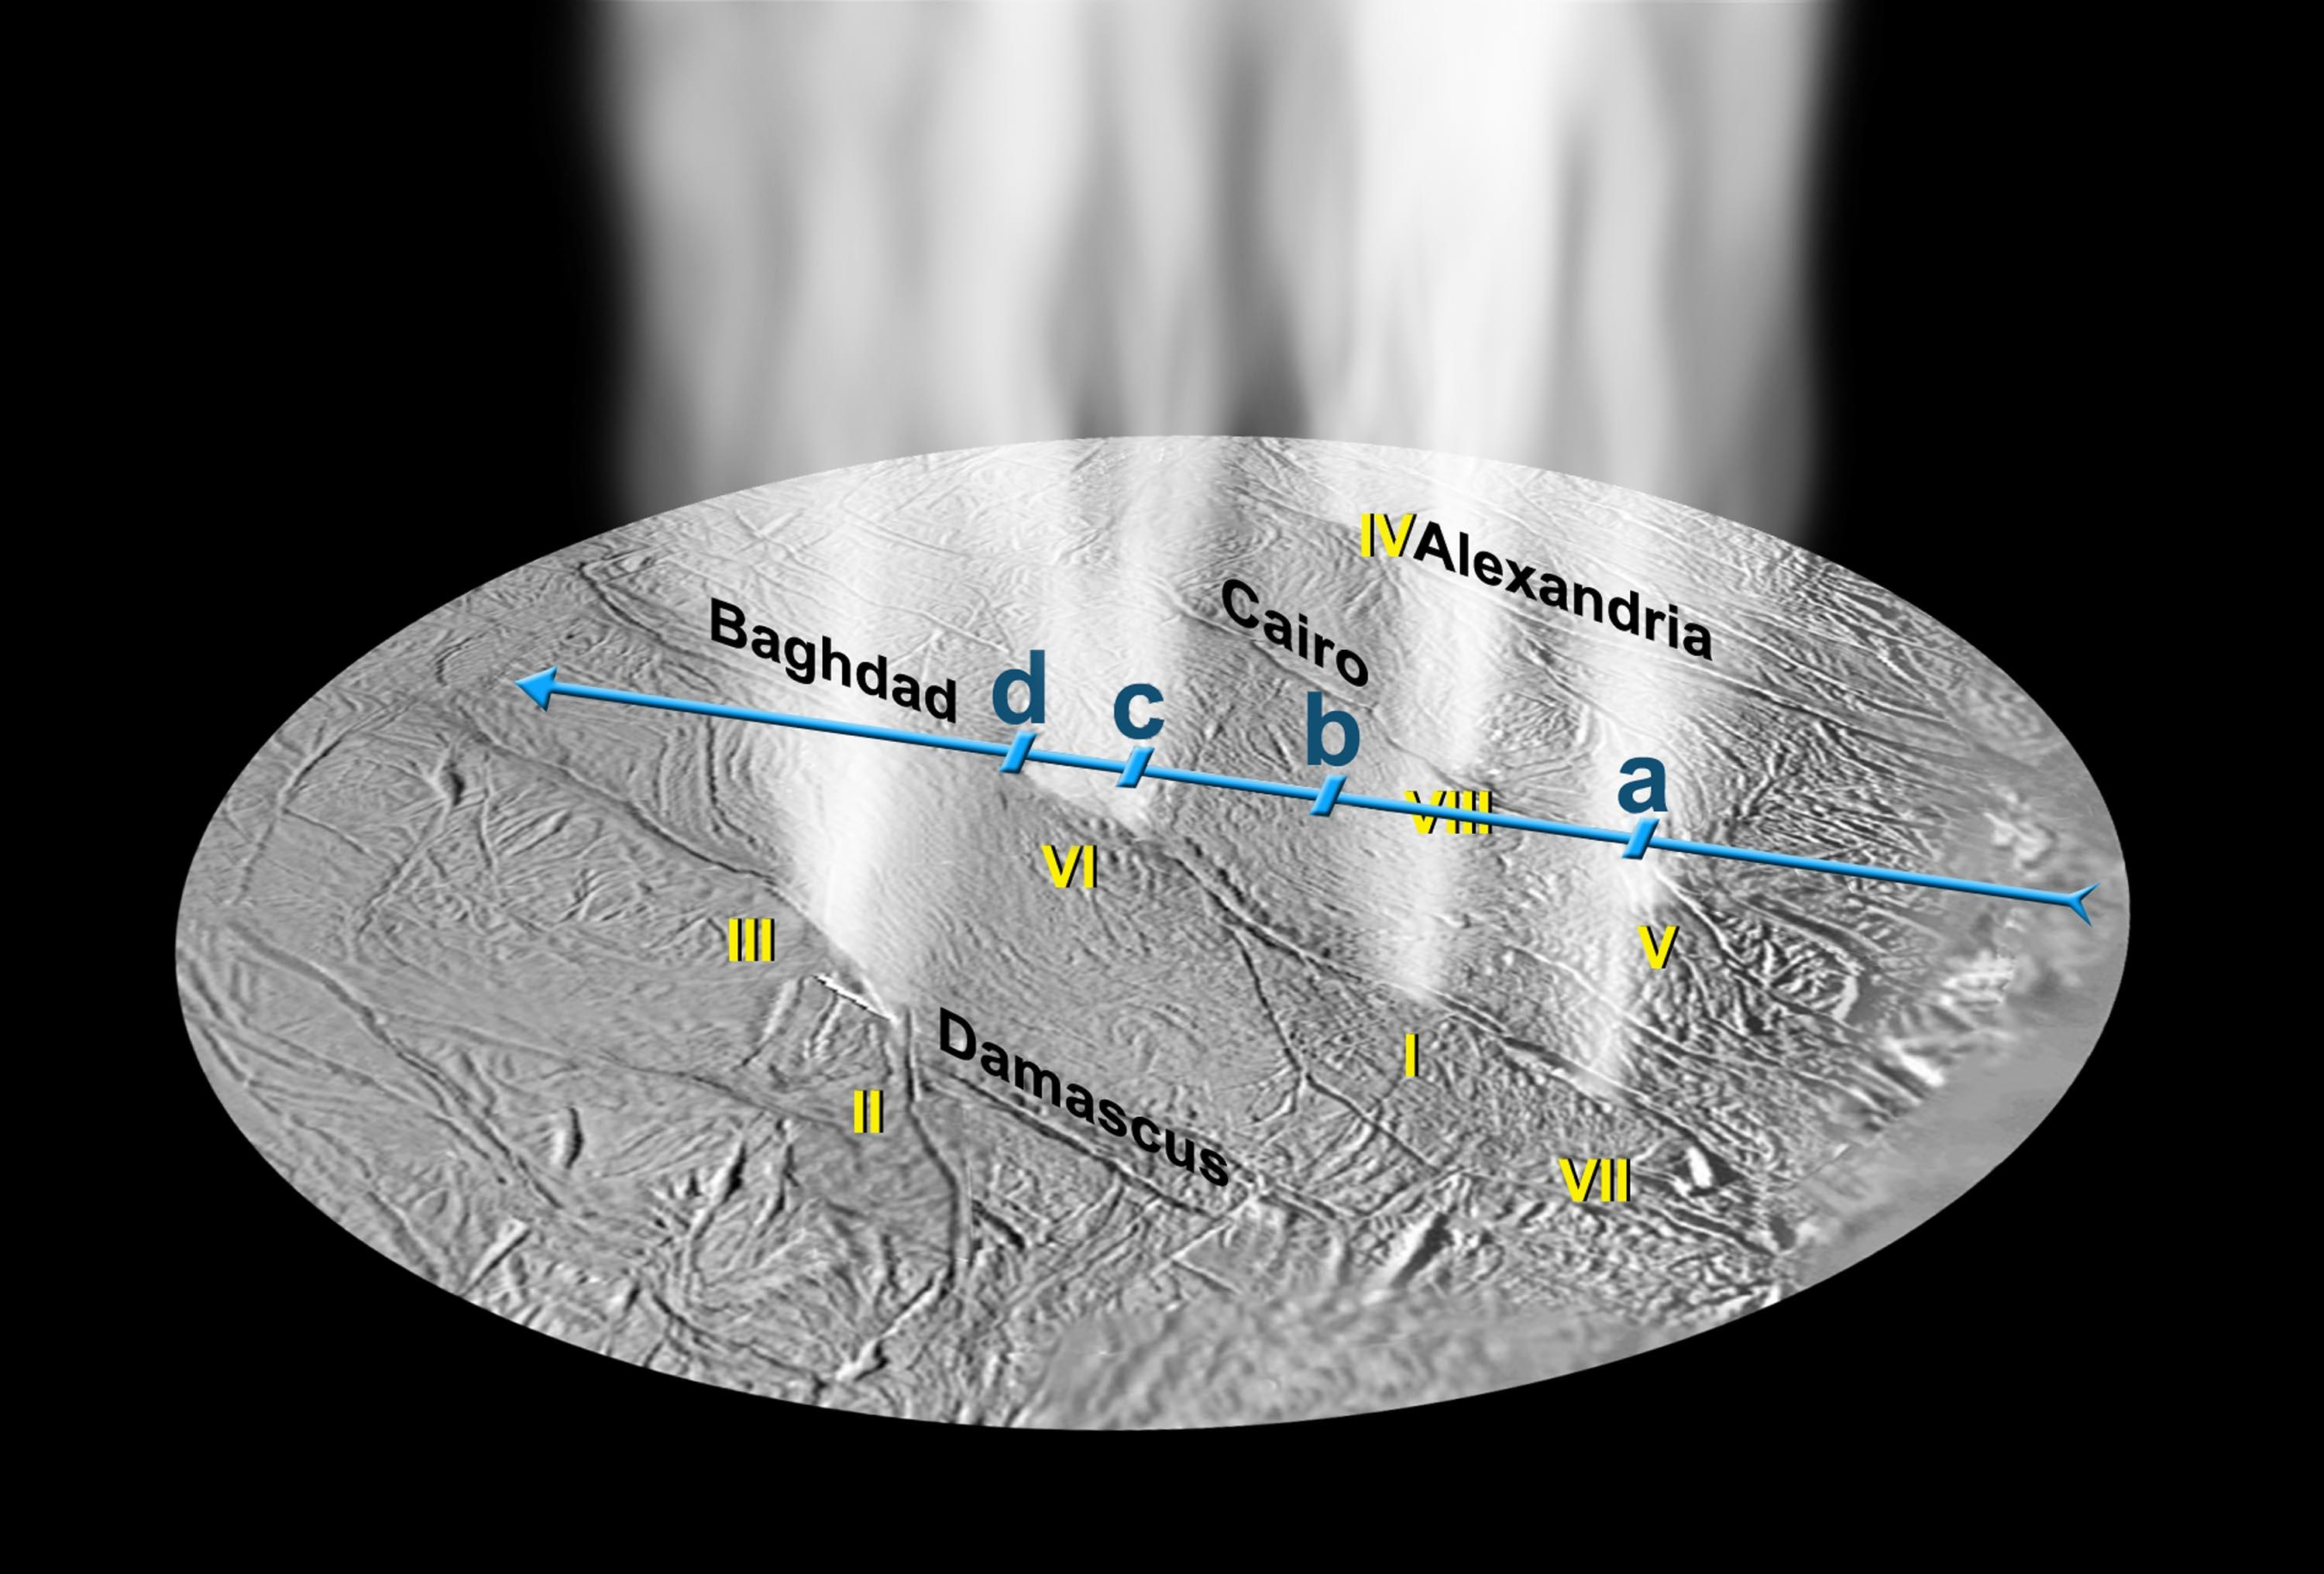 Graphic of jets of high-density gas detected by Cassini on Enceladus